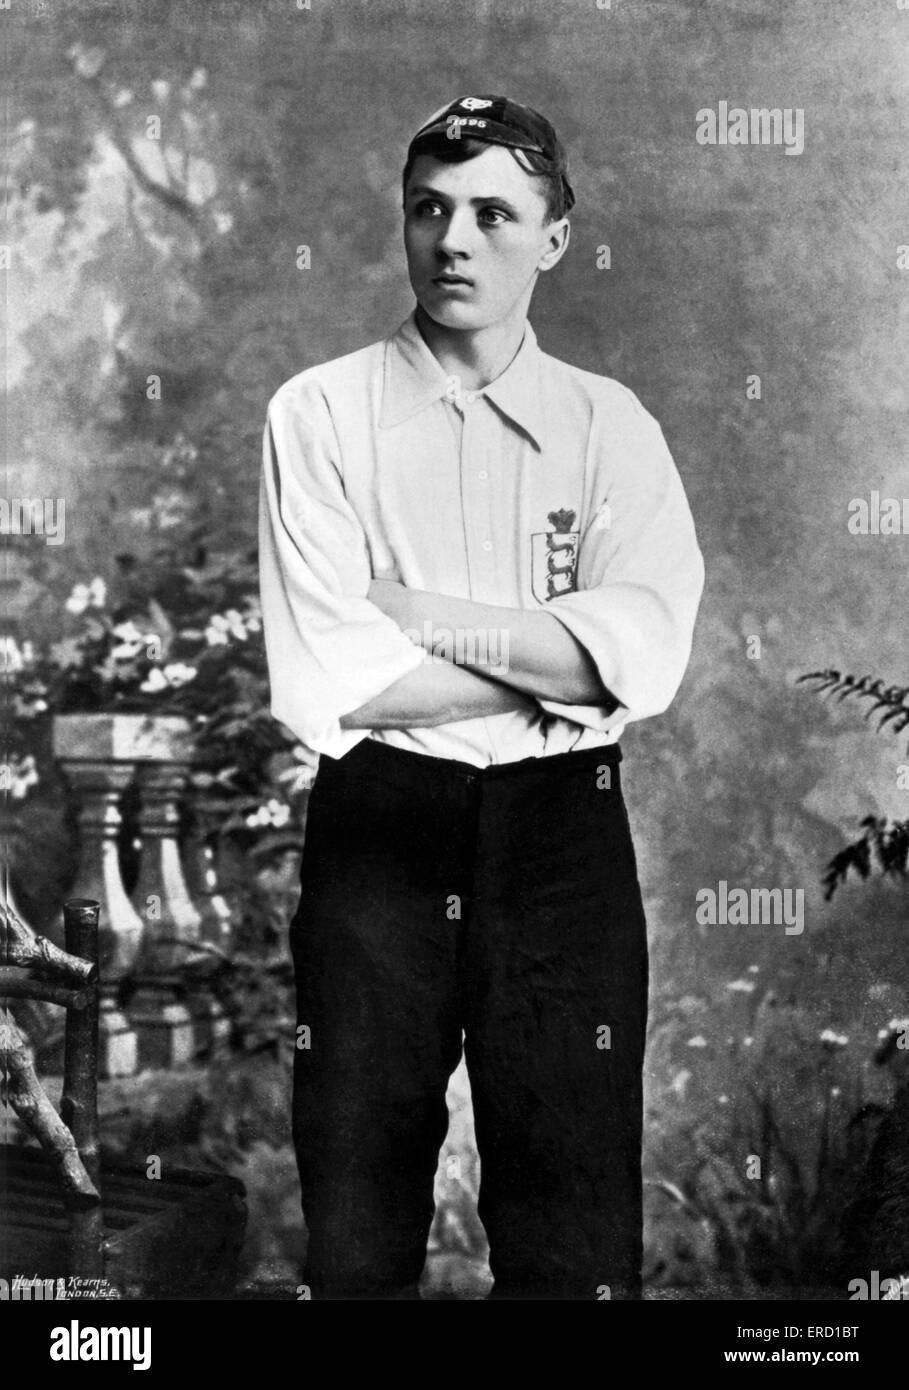 Steve Bloomer, Derby County and England footballer. Pictured circa 1905. - Stock Image